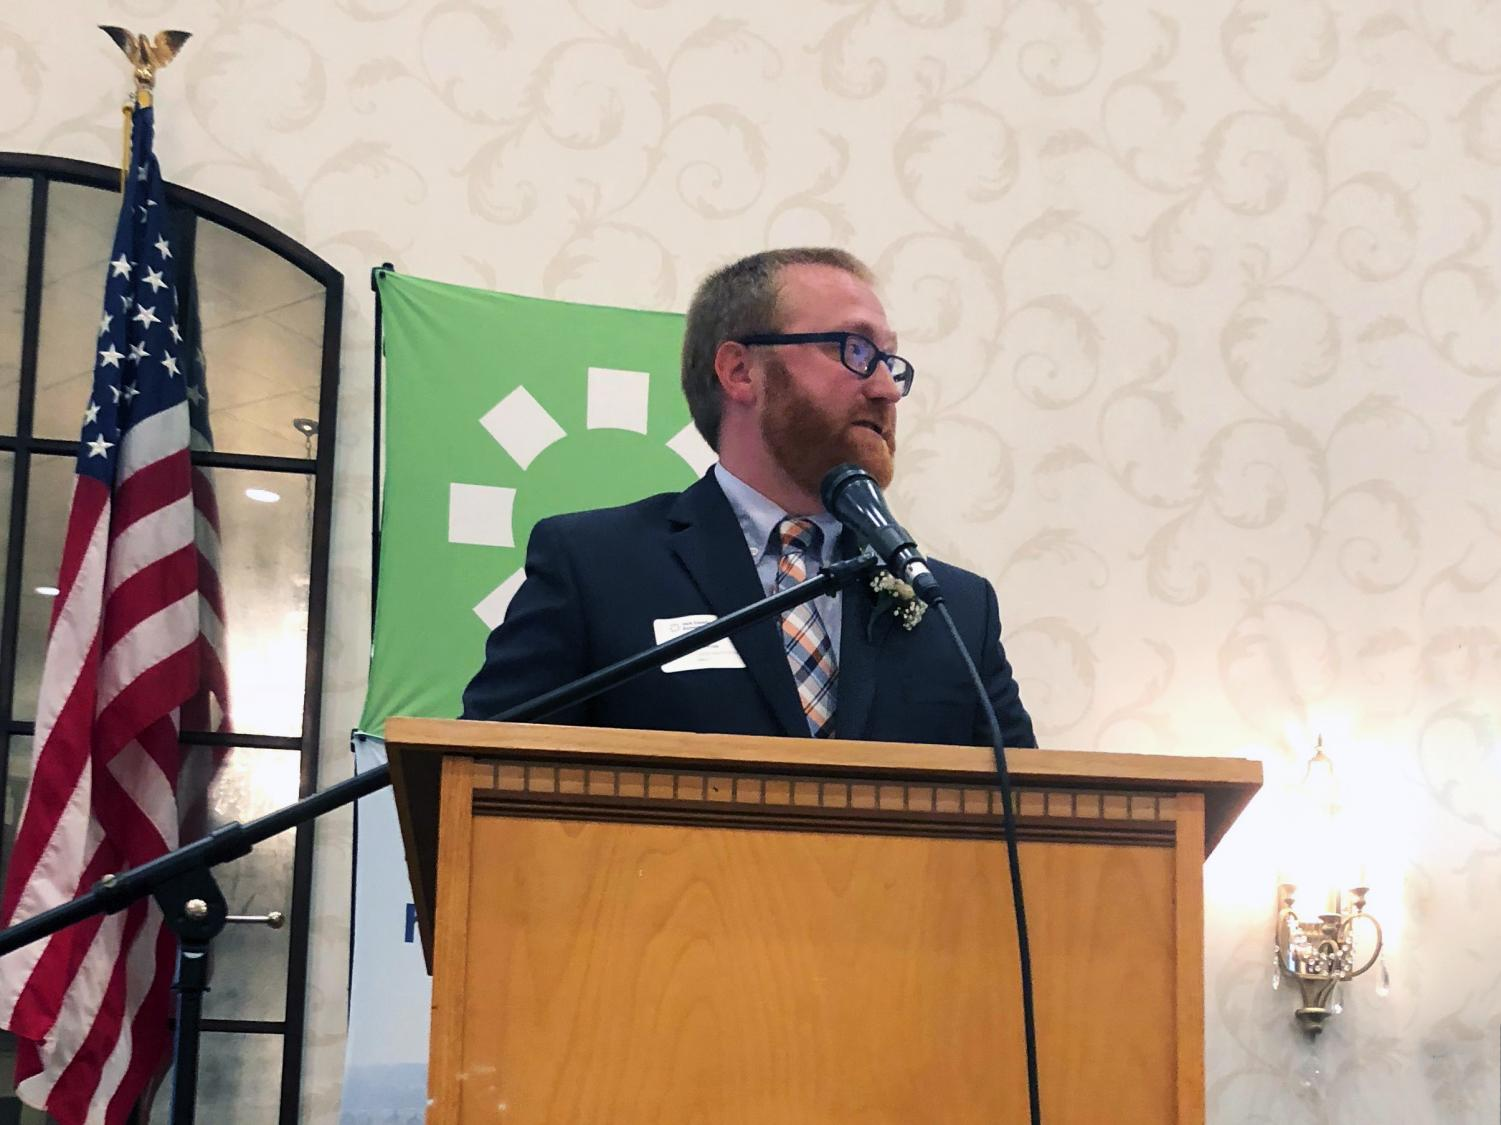 Susquehannock High School Assistant Principal James Sterner was recently named 'Education/Workforce Development Advocate of the Year' at the Spirit of York County Awards 2018.